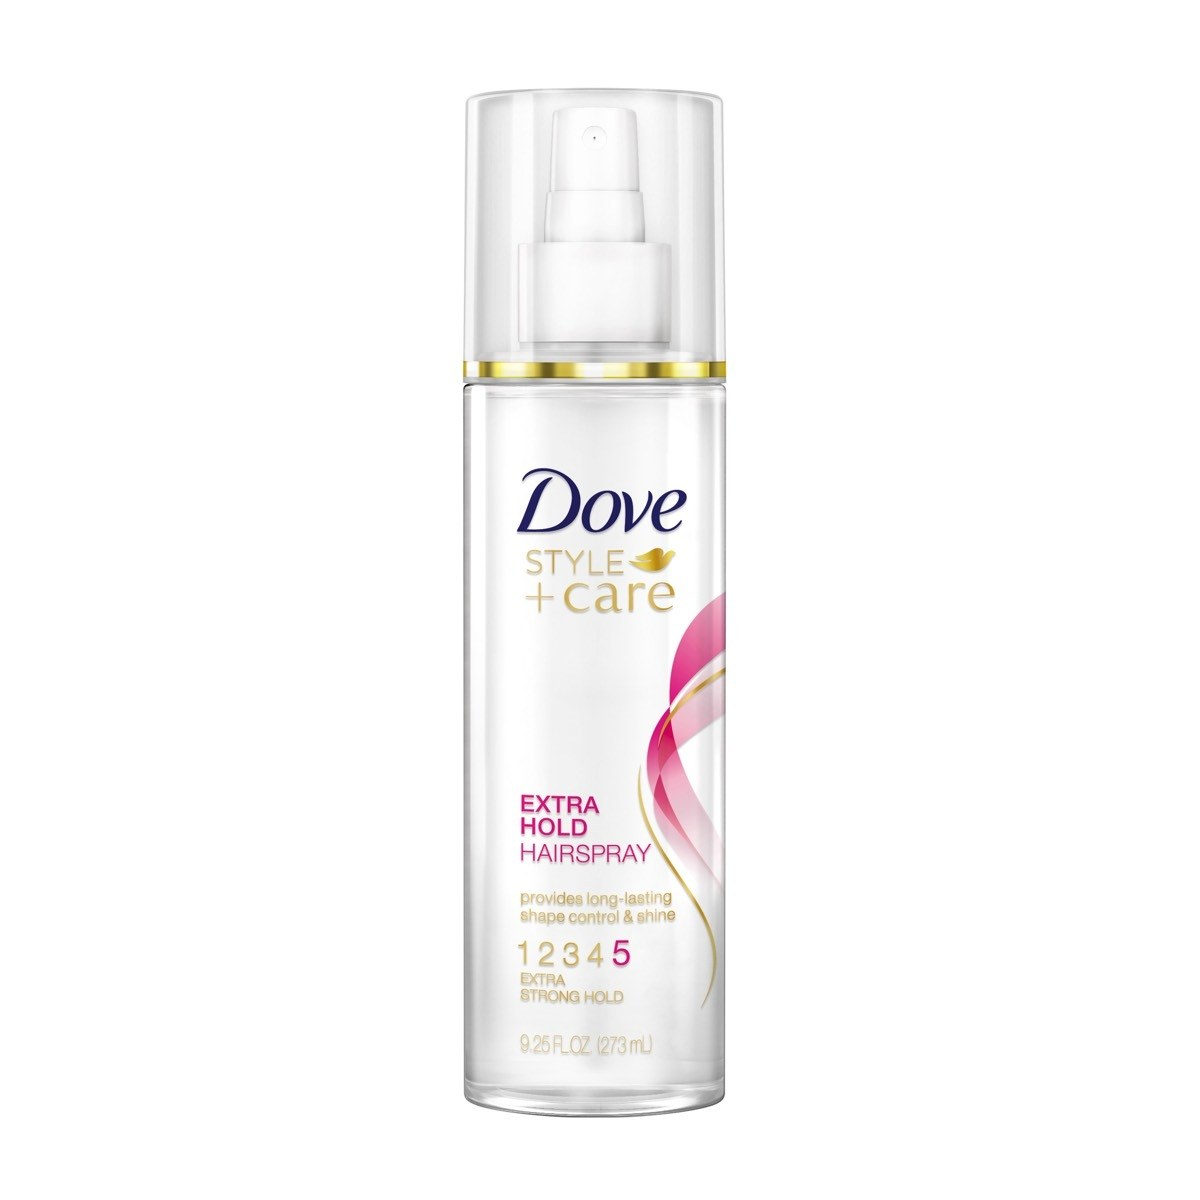 Dove Style+Care Extra Hold Hairspray